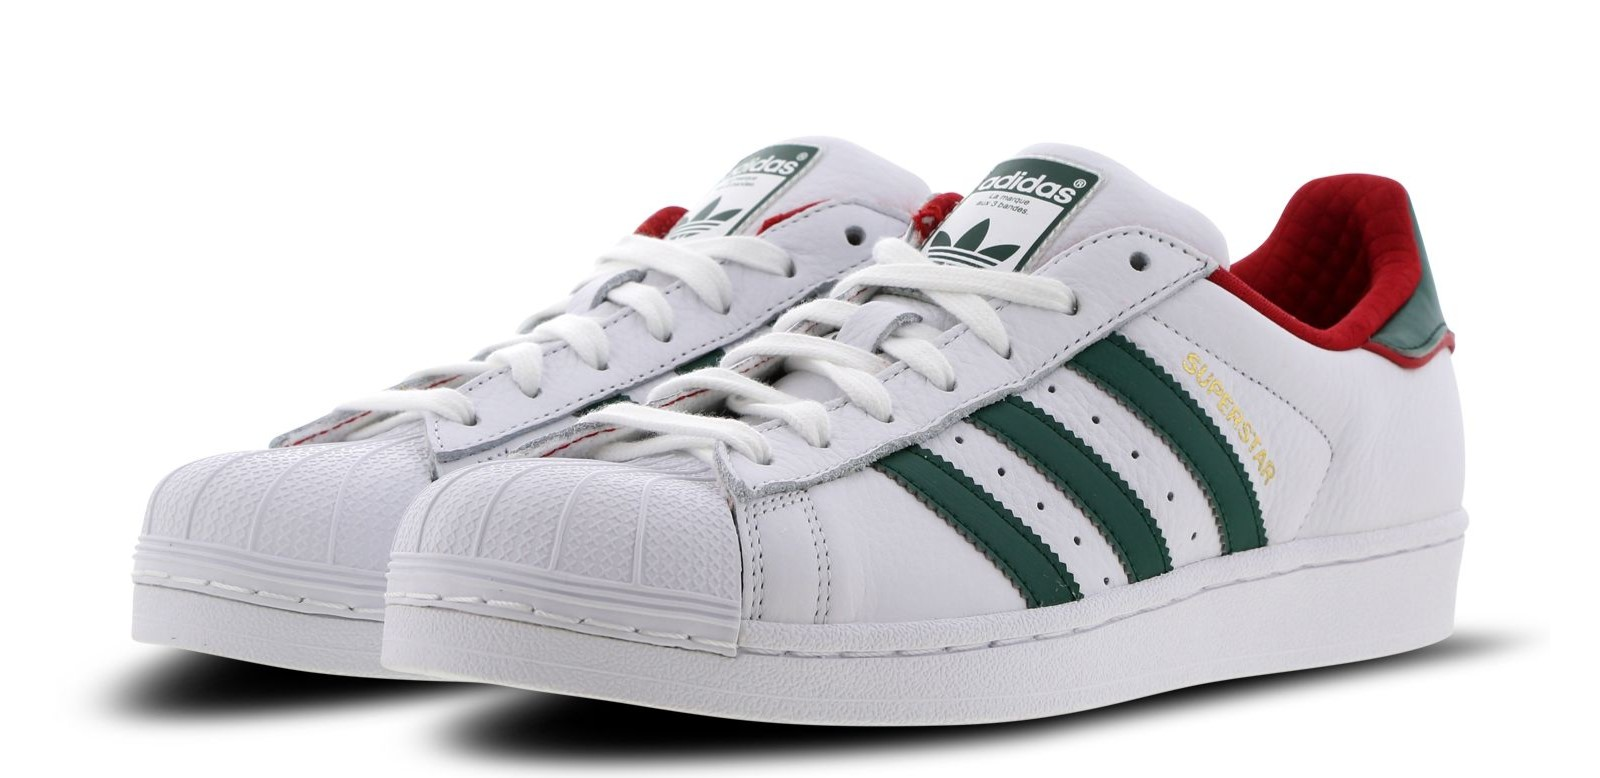 Locker Bi X Colour Shoes Xtz0qhqwf 2 Adidas Foot Superstar SzdCwxqS